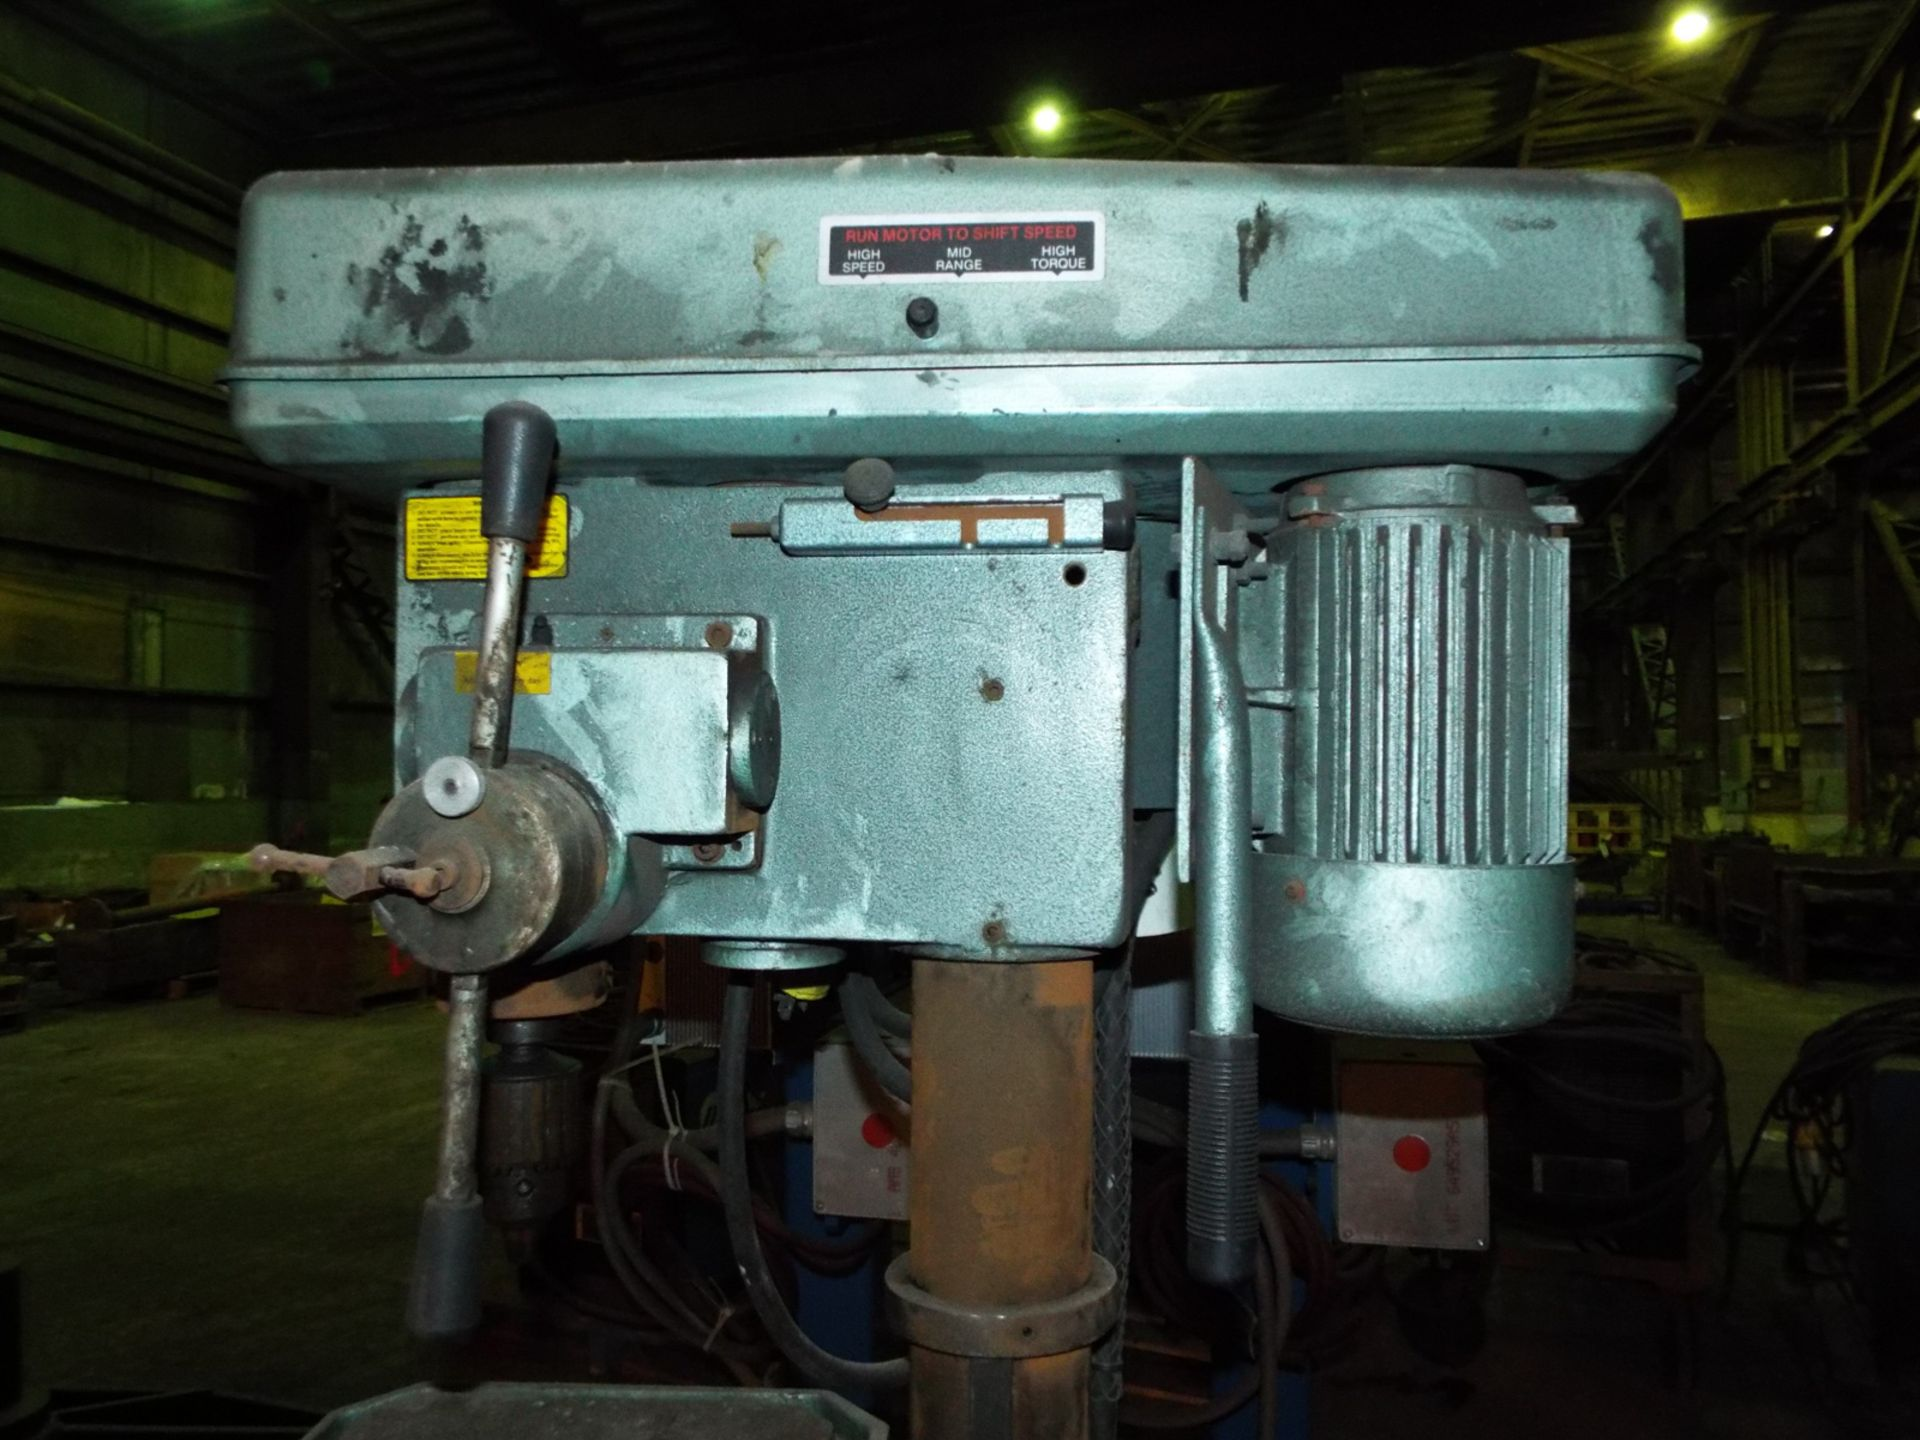 """Lot 14 - ELLIS 9400 VARIABLE SPEED DRILL PRESS WITH 16""""X17.5"""" TABLE, 13"""" THROAT, 1200 RPM, 2 HP, S/N:"""